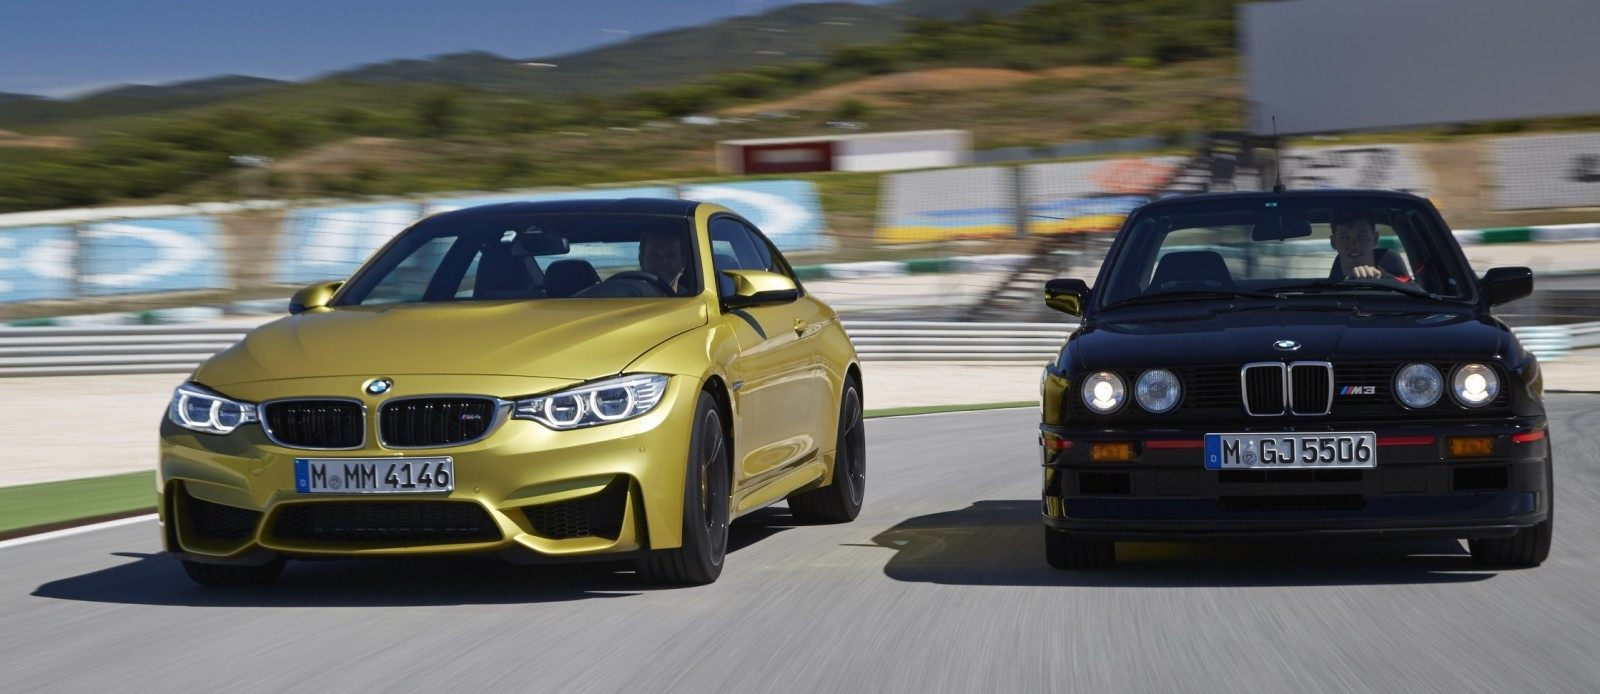 2015 BMW M3 and M4 Meet The Legacy in 52 New Photos With E30 Sport Evolution, E36 M3 Sedan, E46 and E90 20